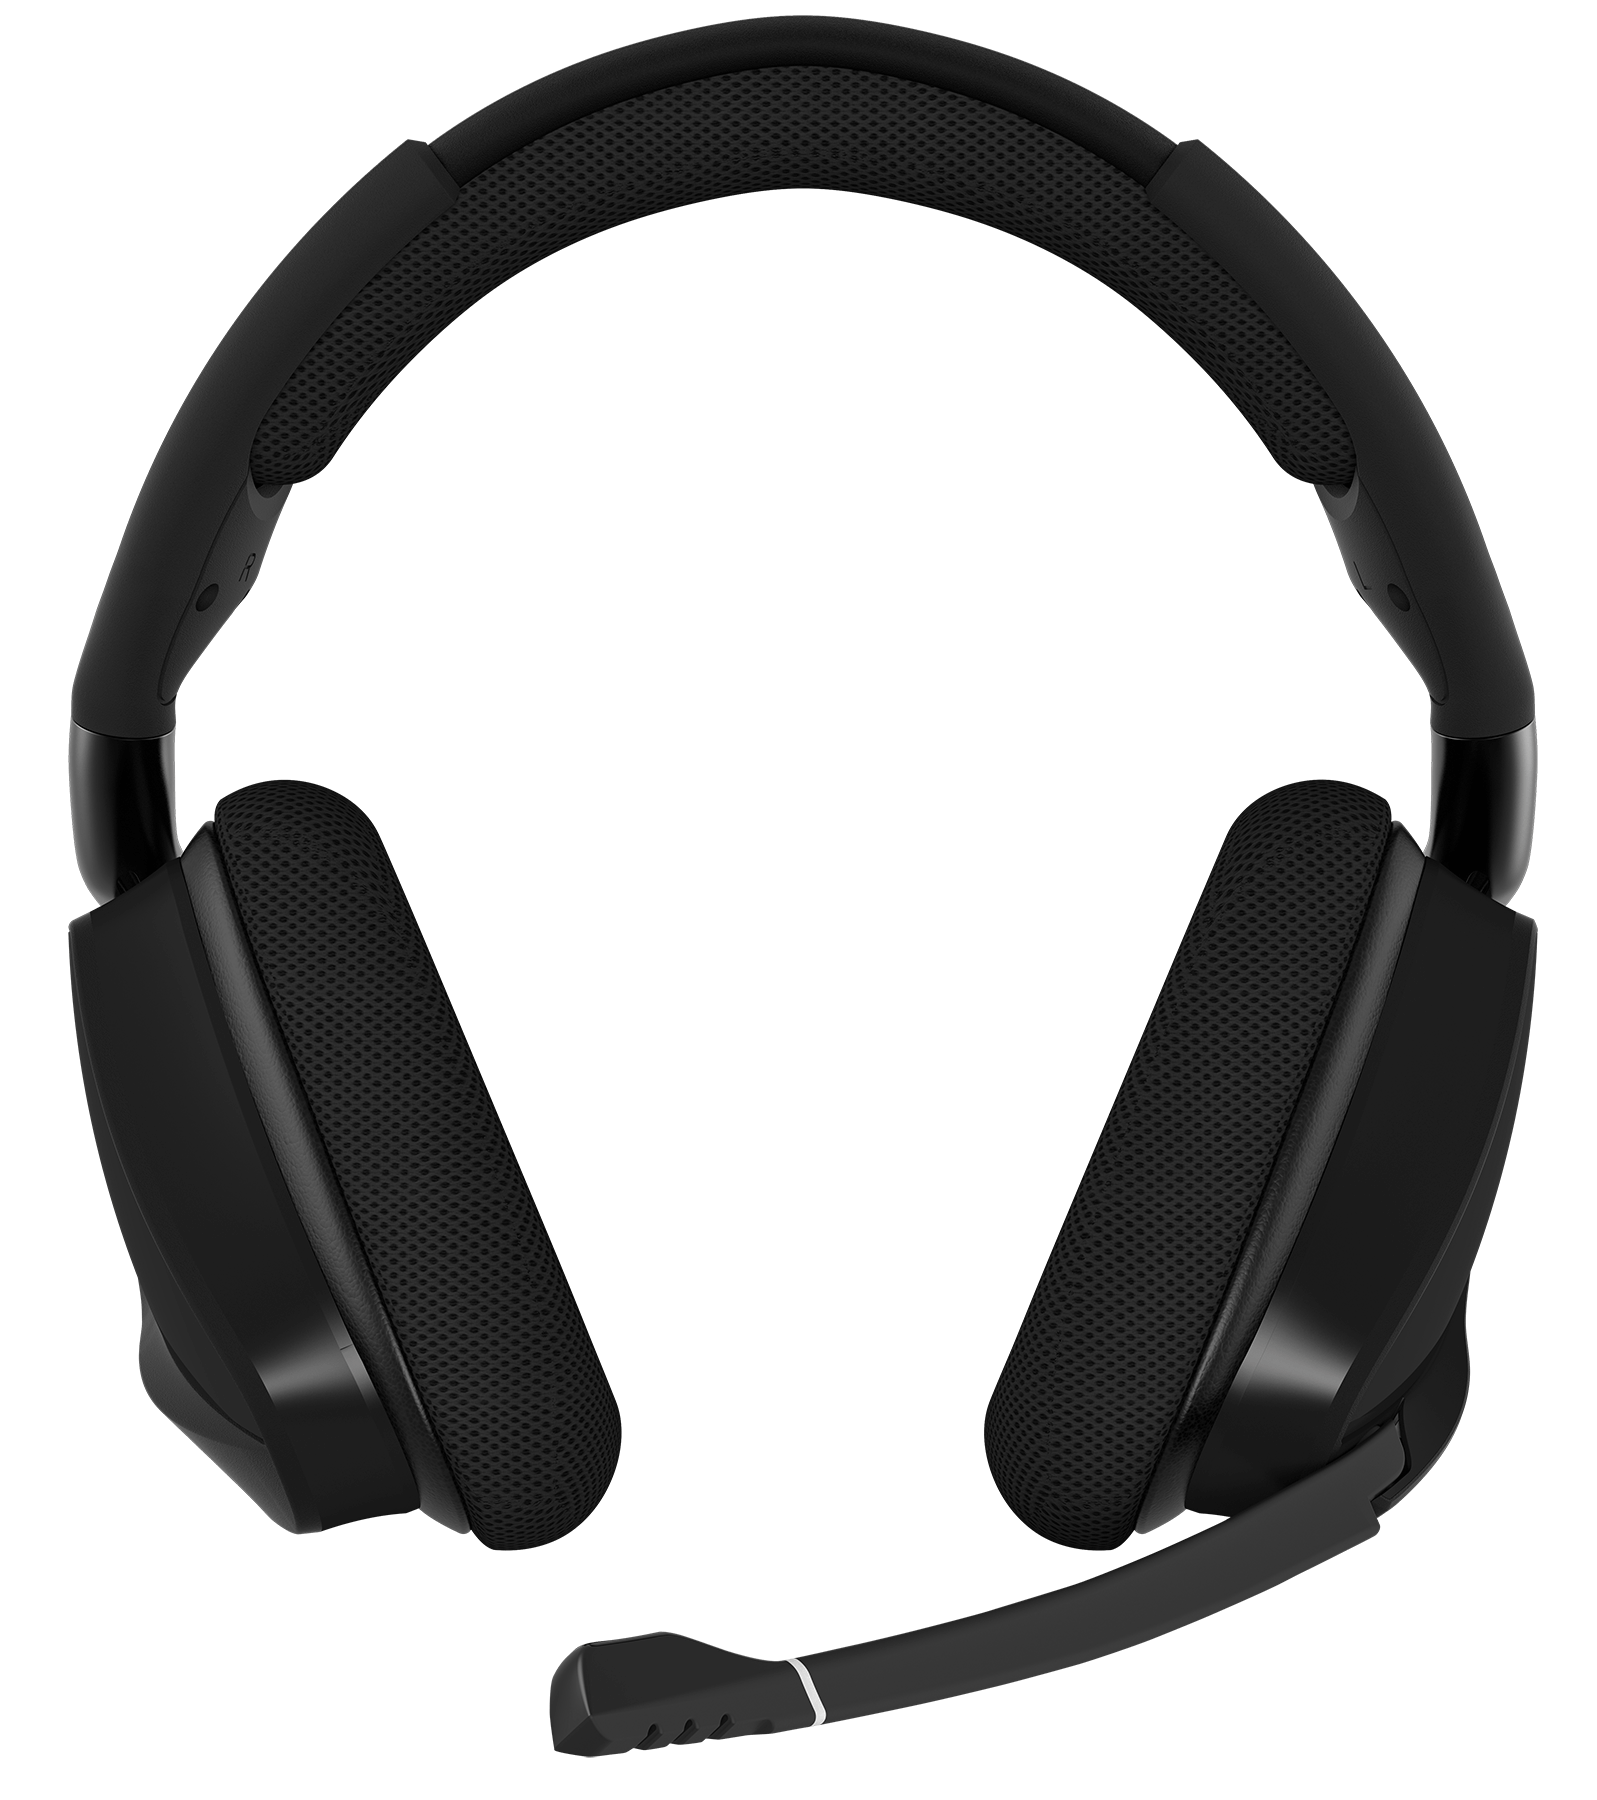 Corsair Void Pro Rgb Wireless Pc Gaming Headset Review Head Set I See No Reason To Pay 30 Extra For What Amounts A Different Color And An Extension Cable But Maybe Thats Just Me